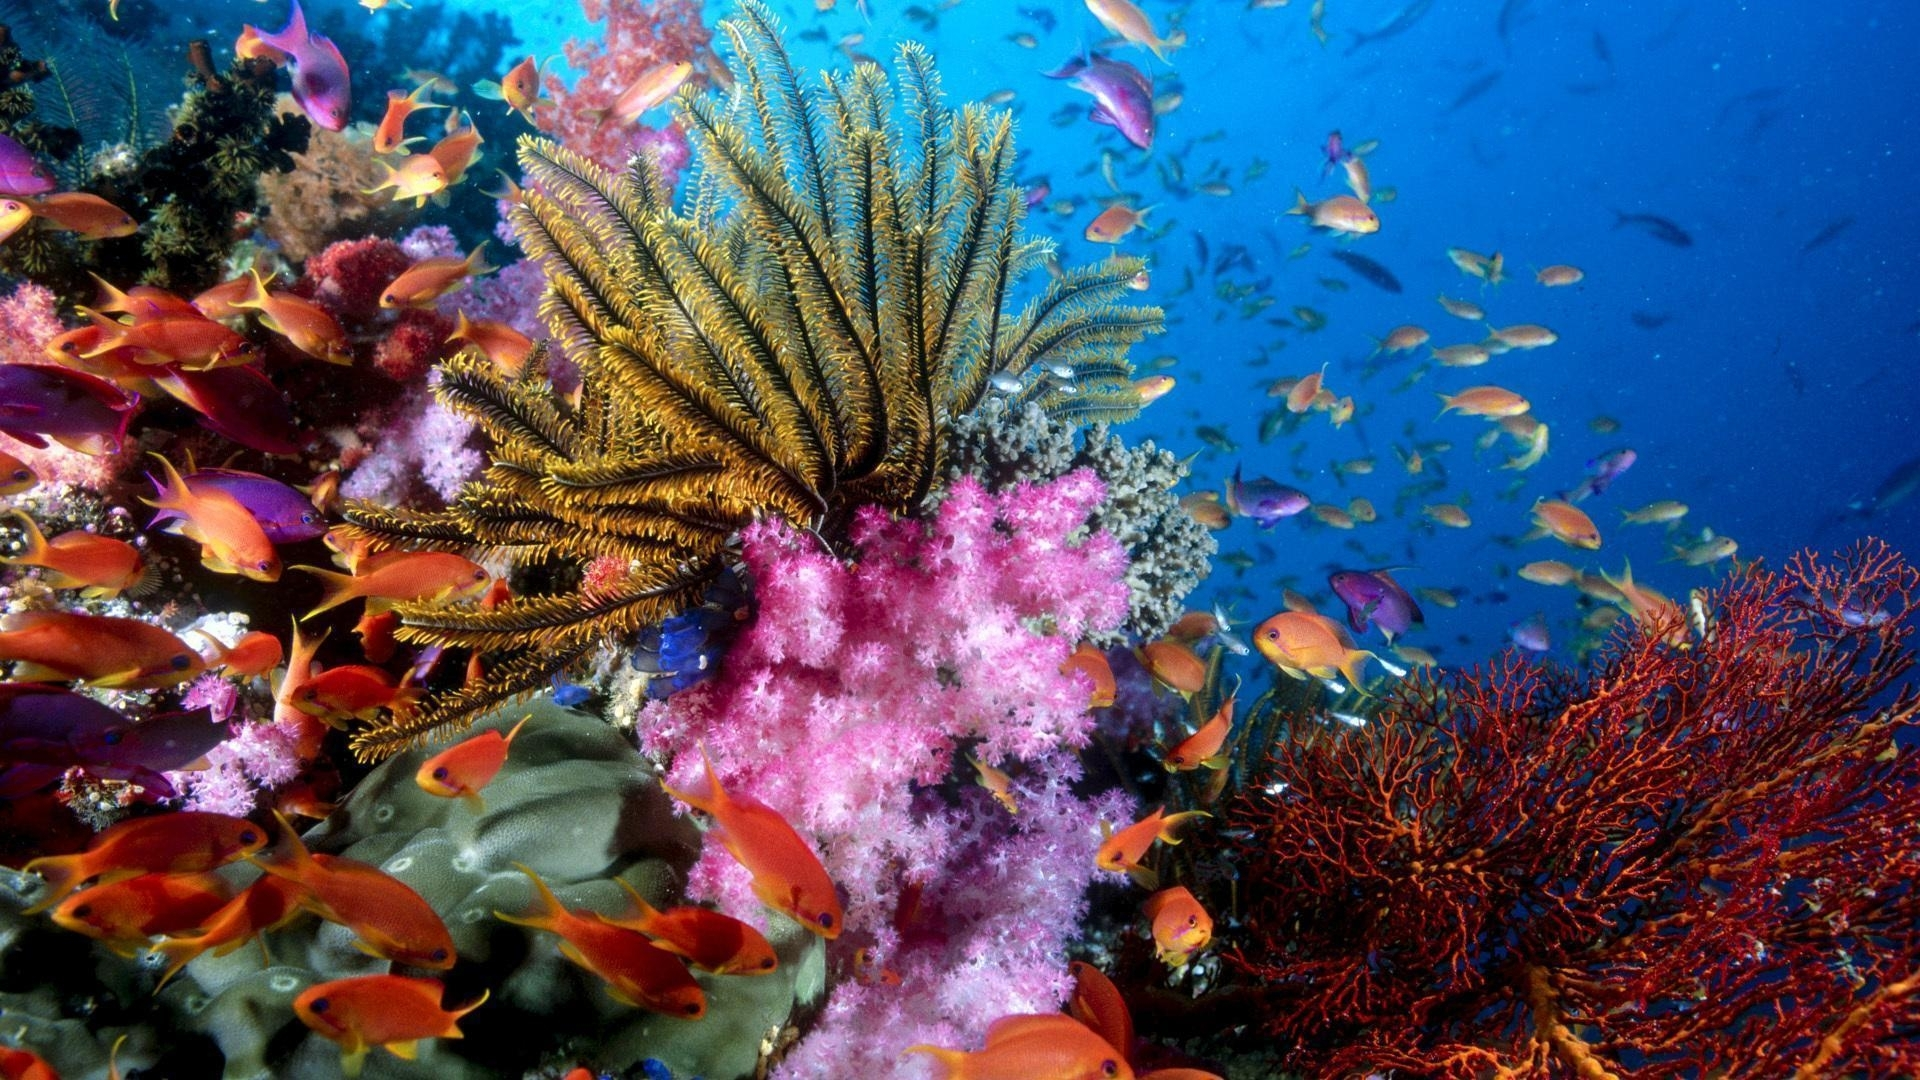 coral reef wallpapers - wallpaper cave